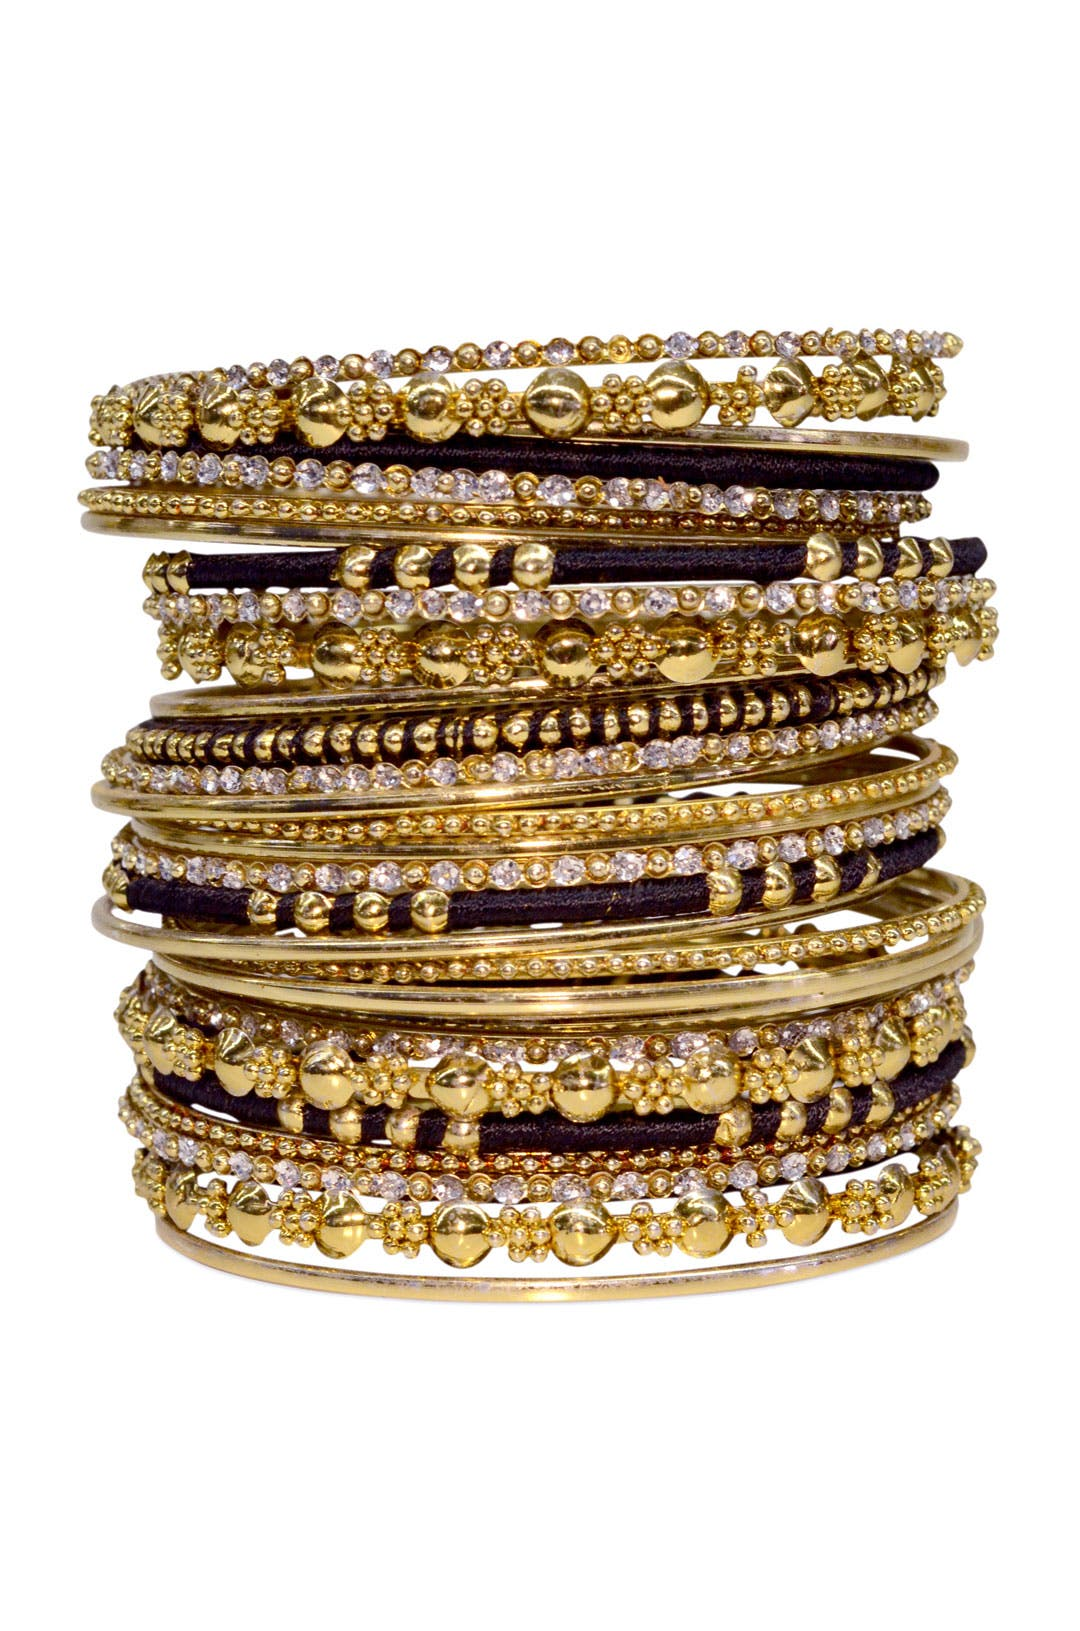 Black & Gold Bangle Set by Cinder & Charm